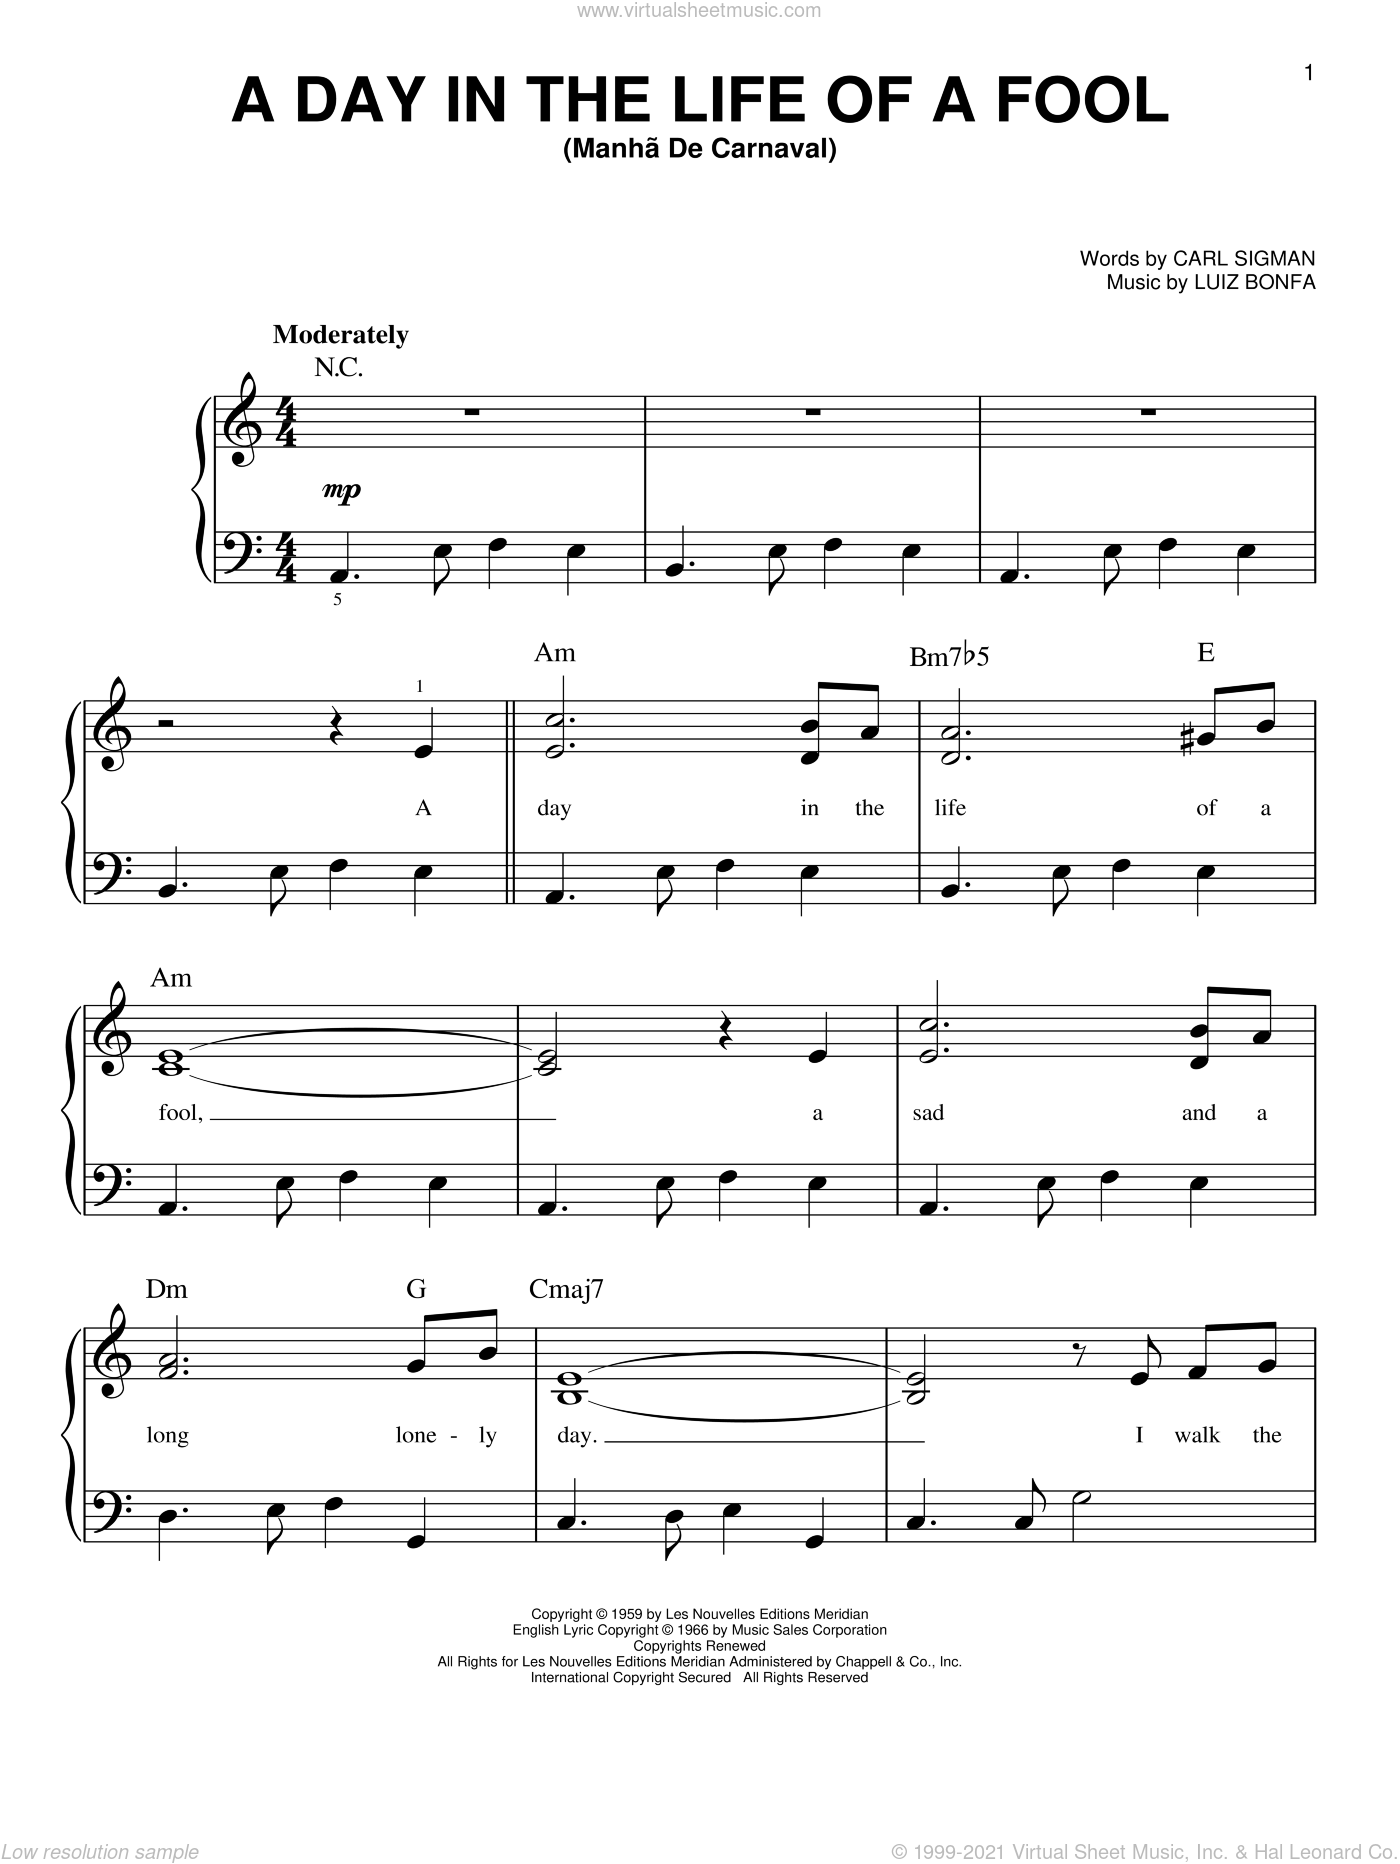 A Day In The Life Of A Fool (Manha De Carnaval) sheet music for piano solo by Carl Sigman and Luiz Bonfa, easy piano. Score Image Preview.